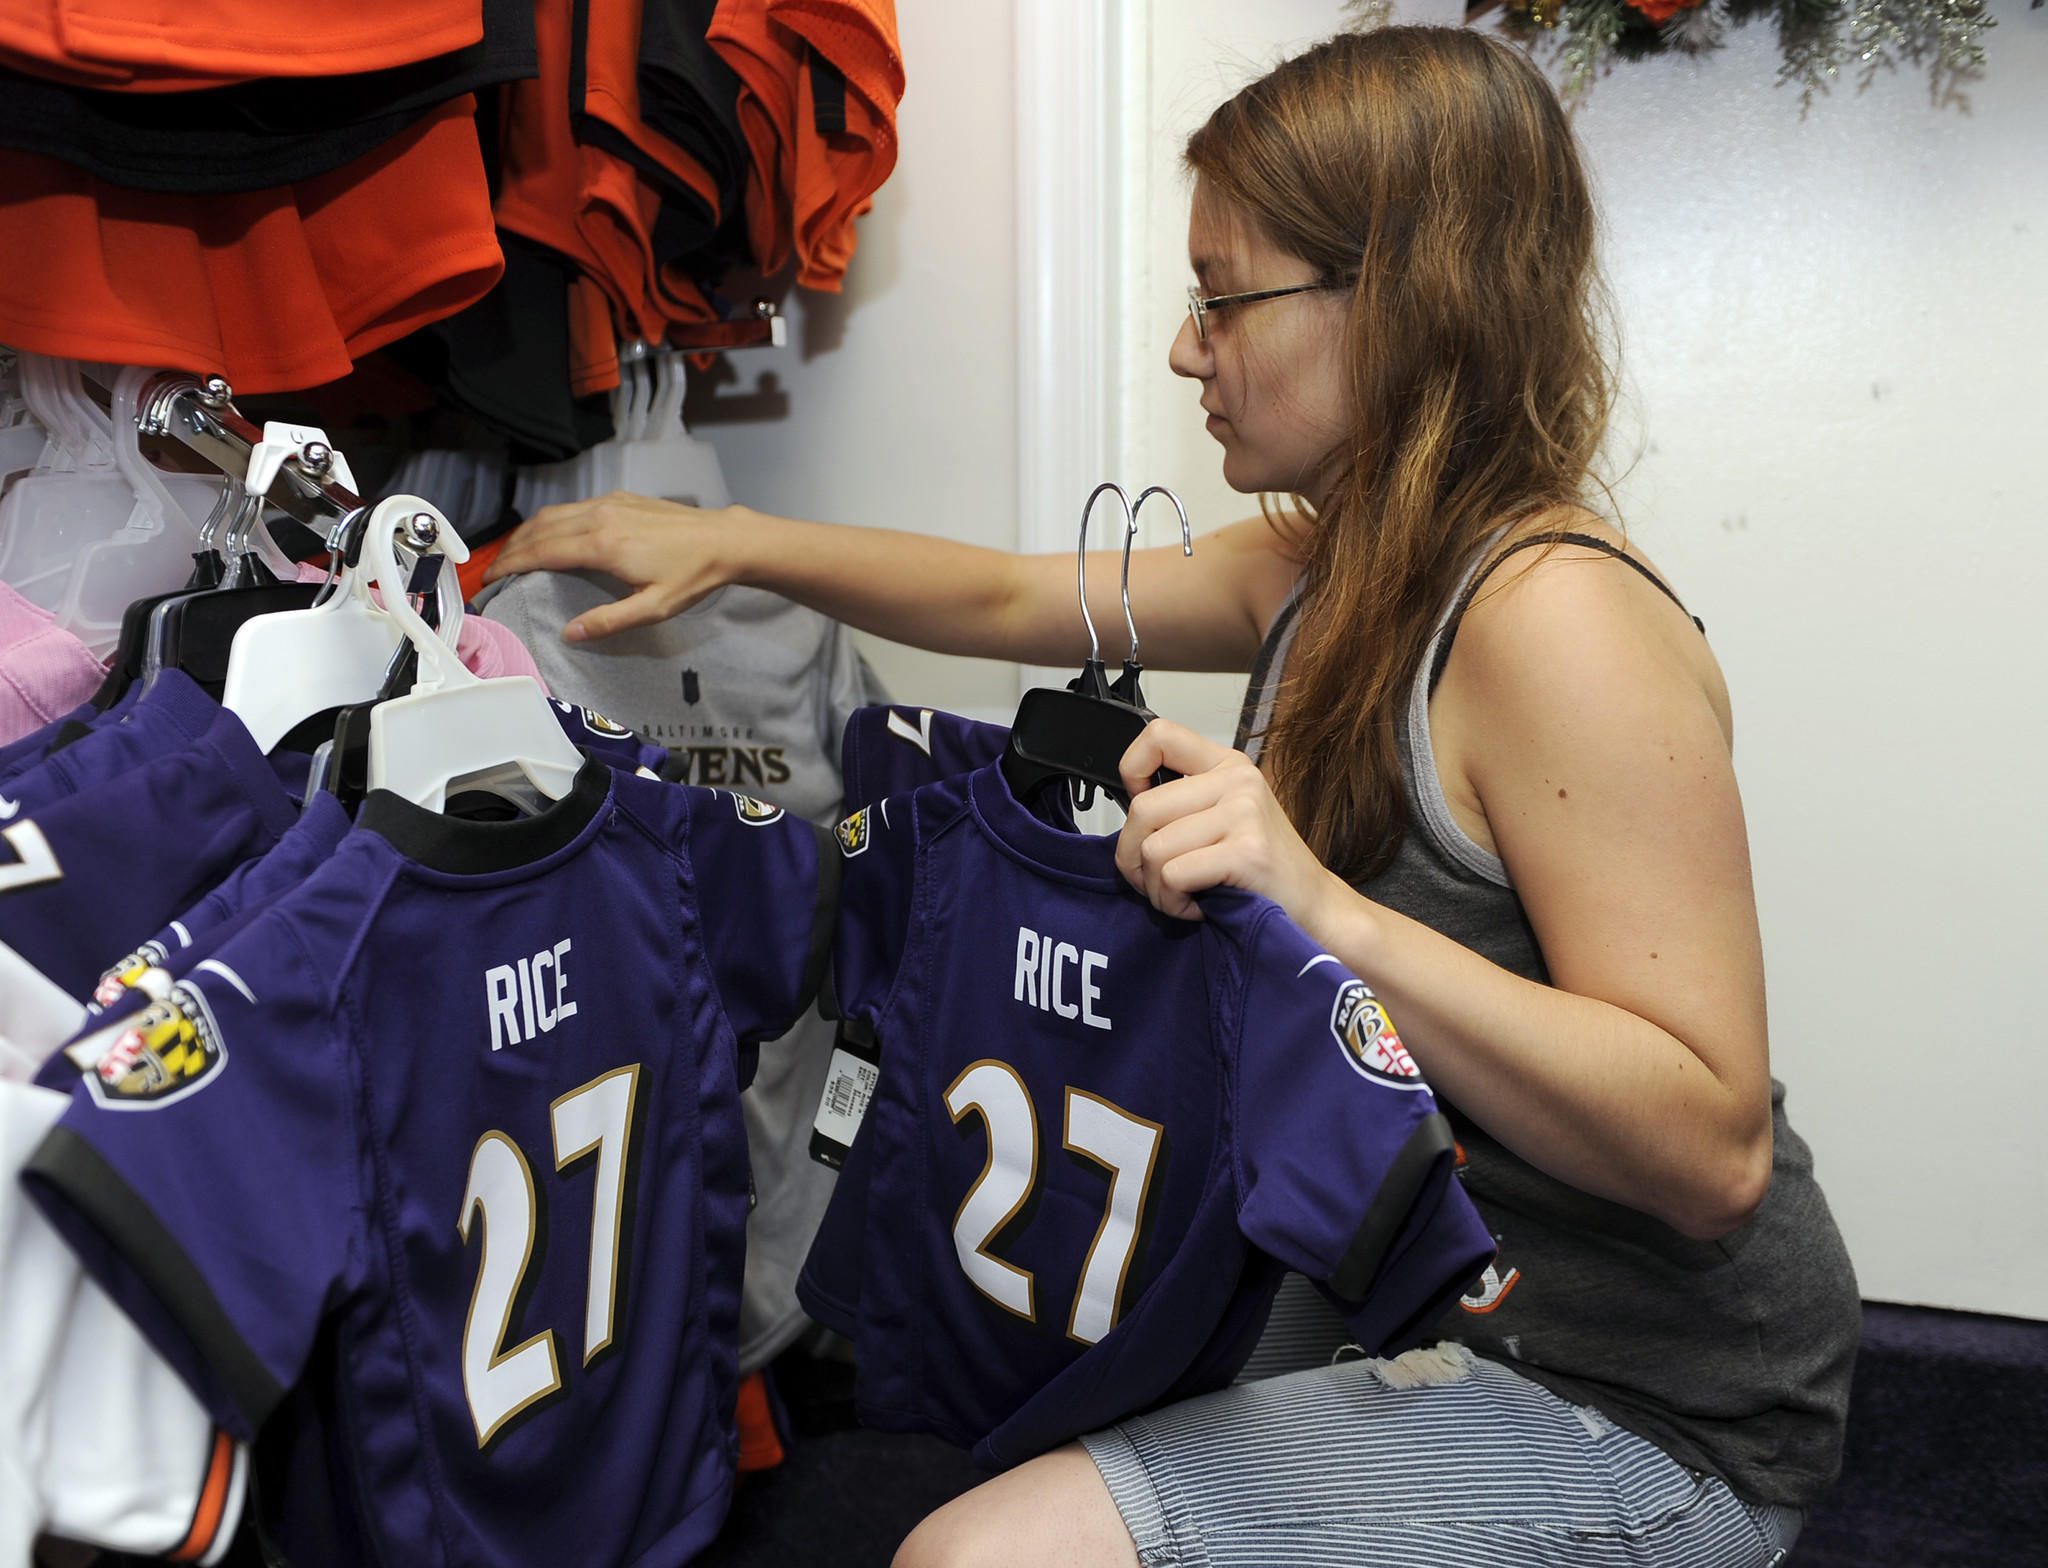 Lindy Burruss, a sales associate at Wild Bill's sporting goods on Belair Road, straightens a display of toddler-sized Ray Rice and other jerseys.